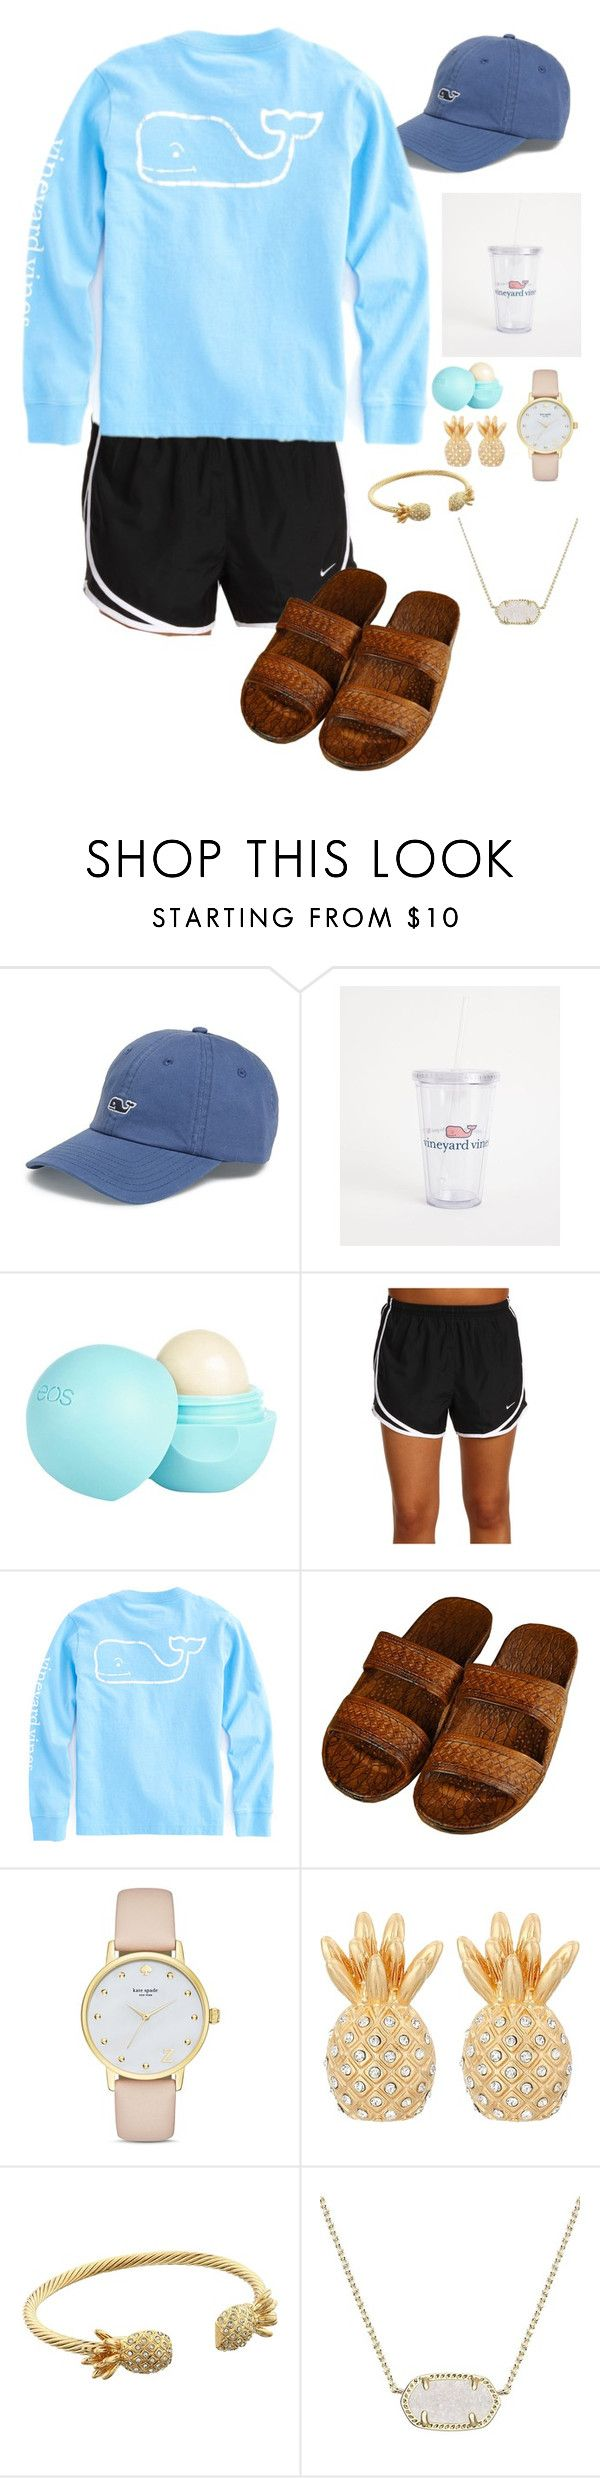 """Happy Friday!//Emma"" by preppy-girls-with-passion ❤ liked on Polyvore featuring Vineyard Vines, River Island, NIKE, Kate Spade, Lilly Pulitzer and Kendra Scott"